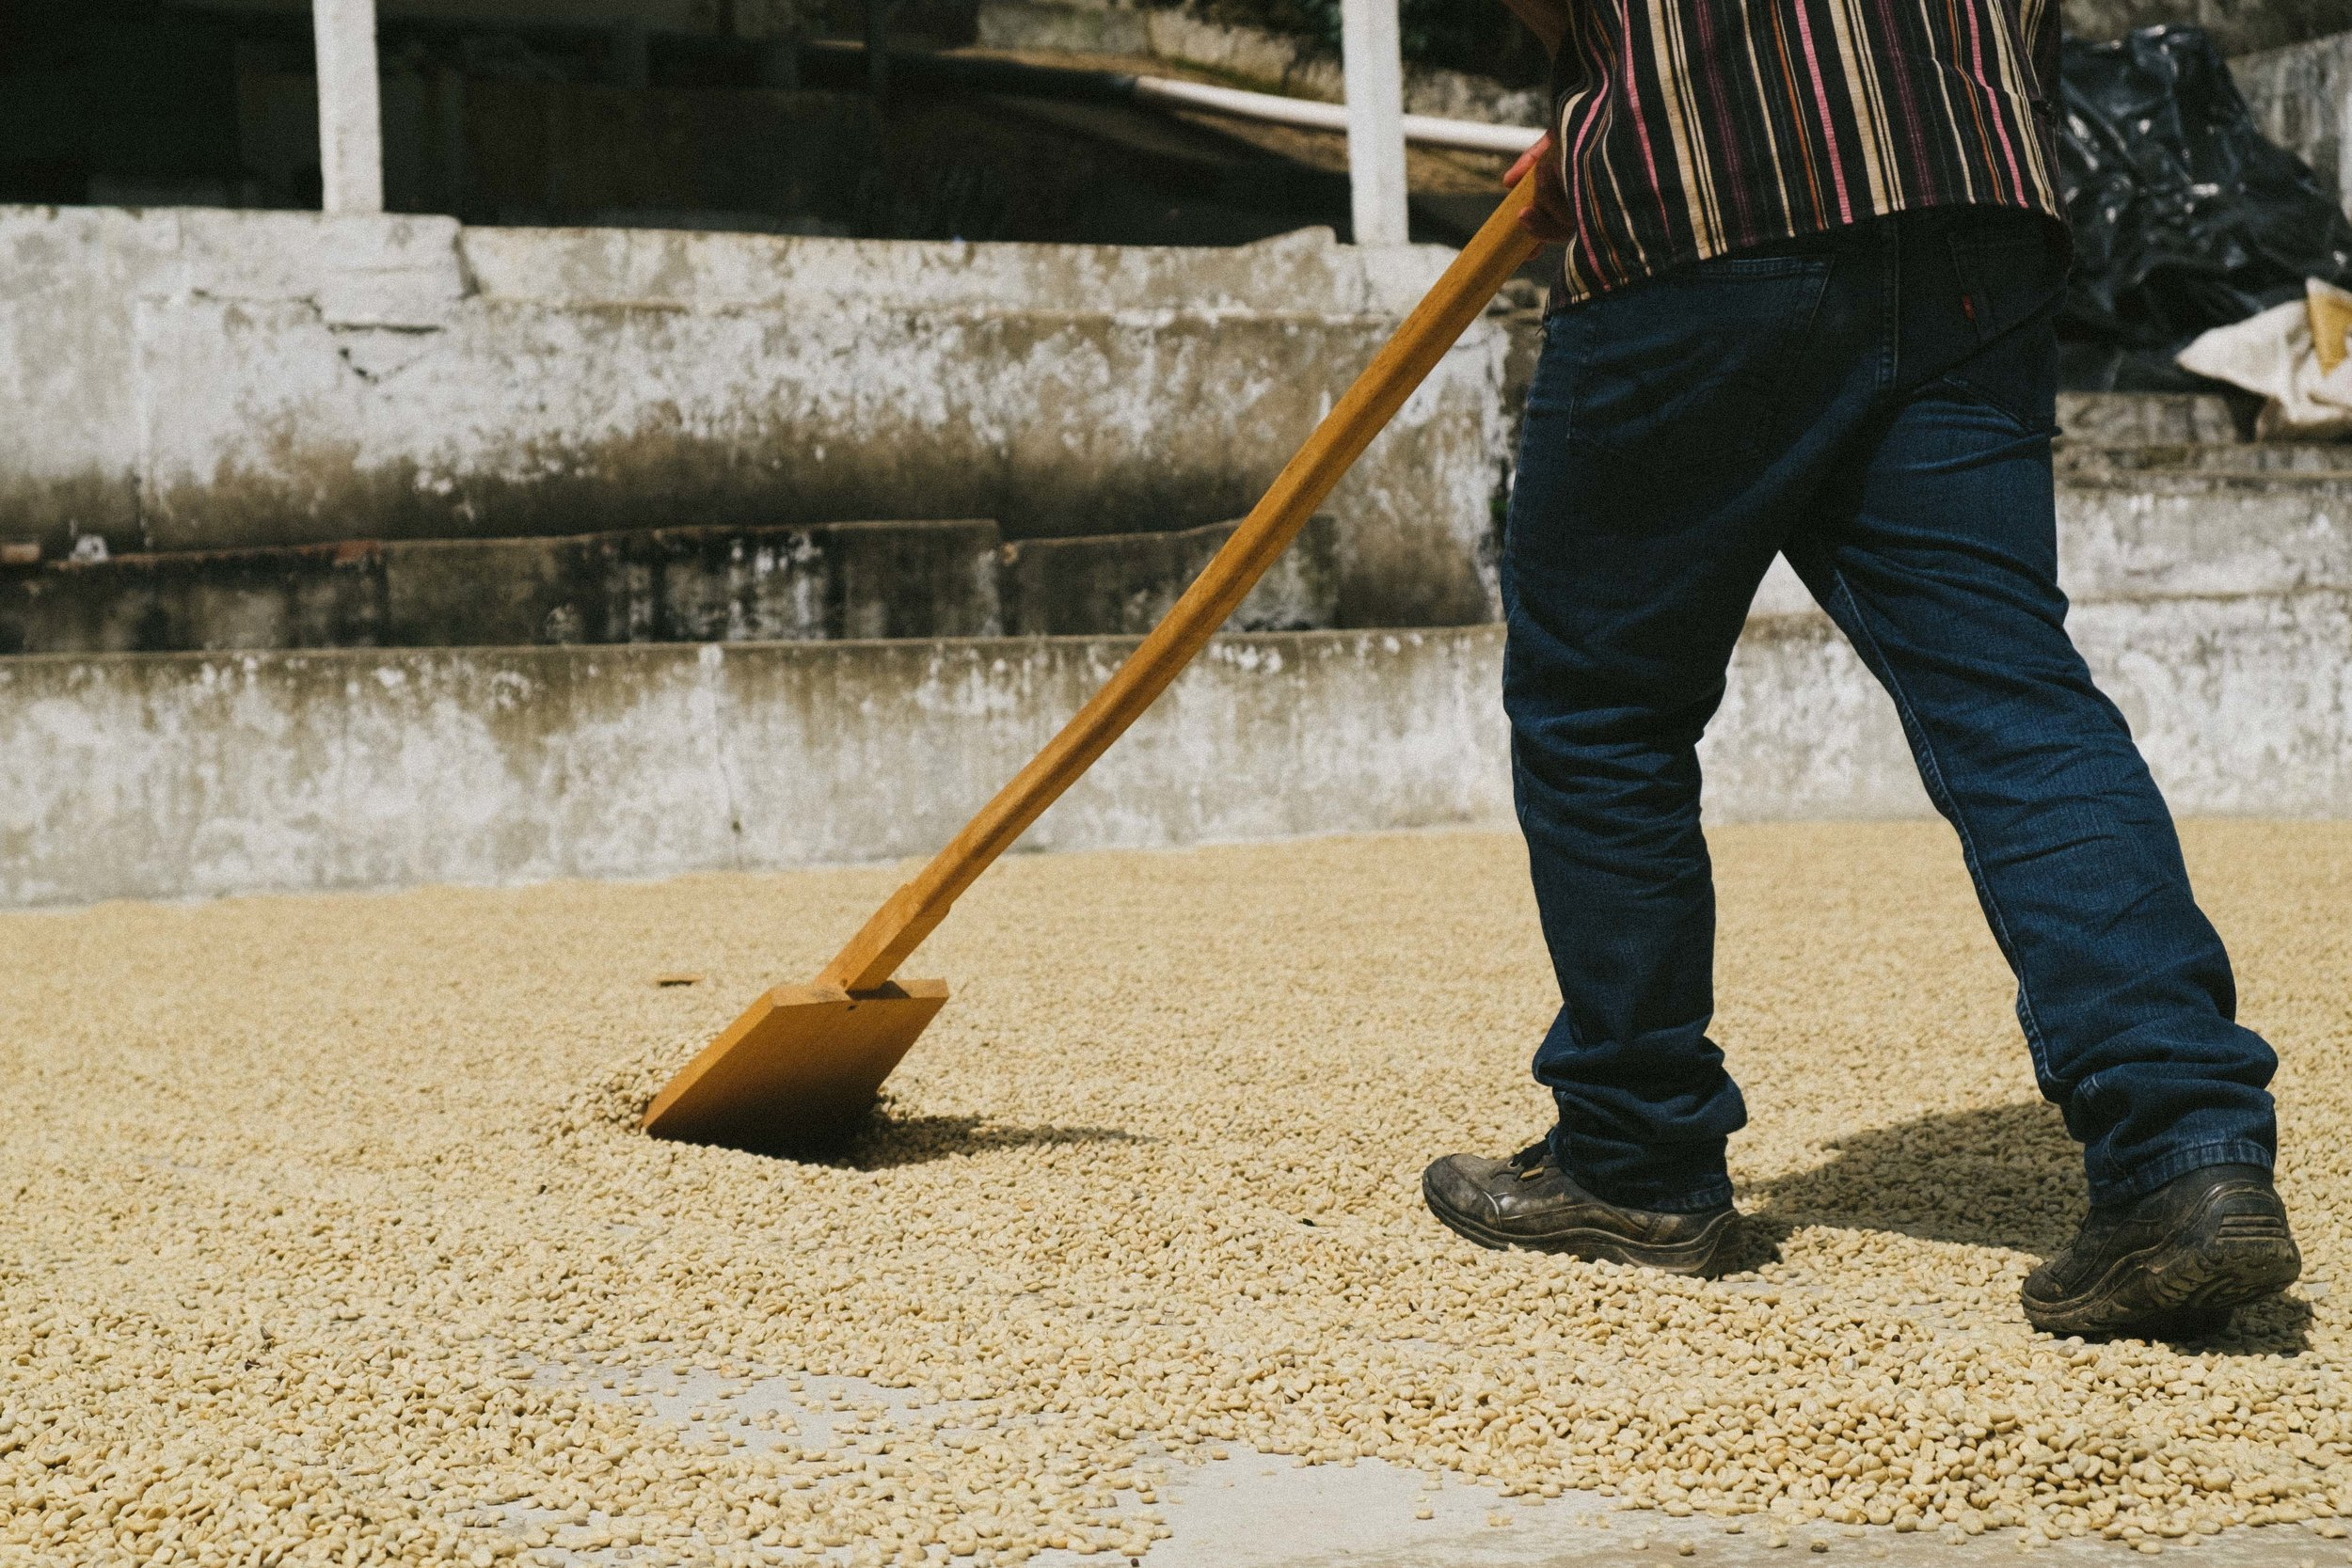 Turning the coffee parchment during the drying process is necessary to ensure even drying over prolonged period